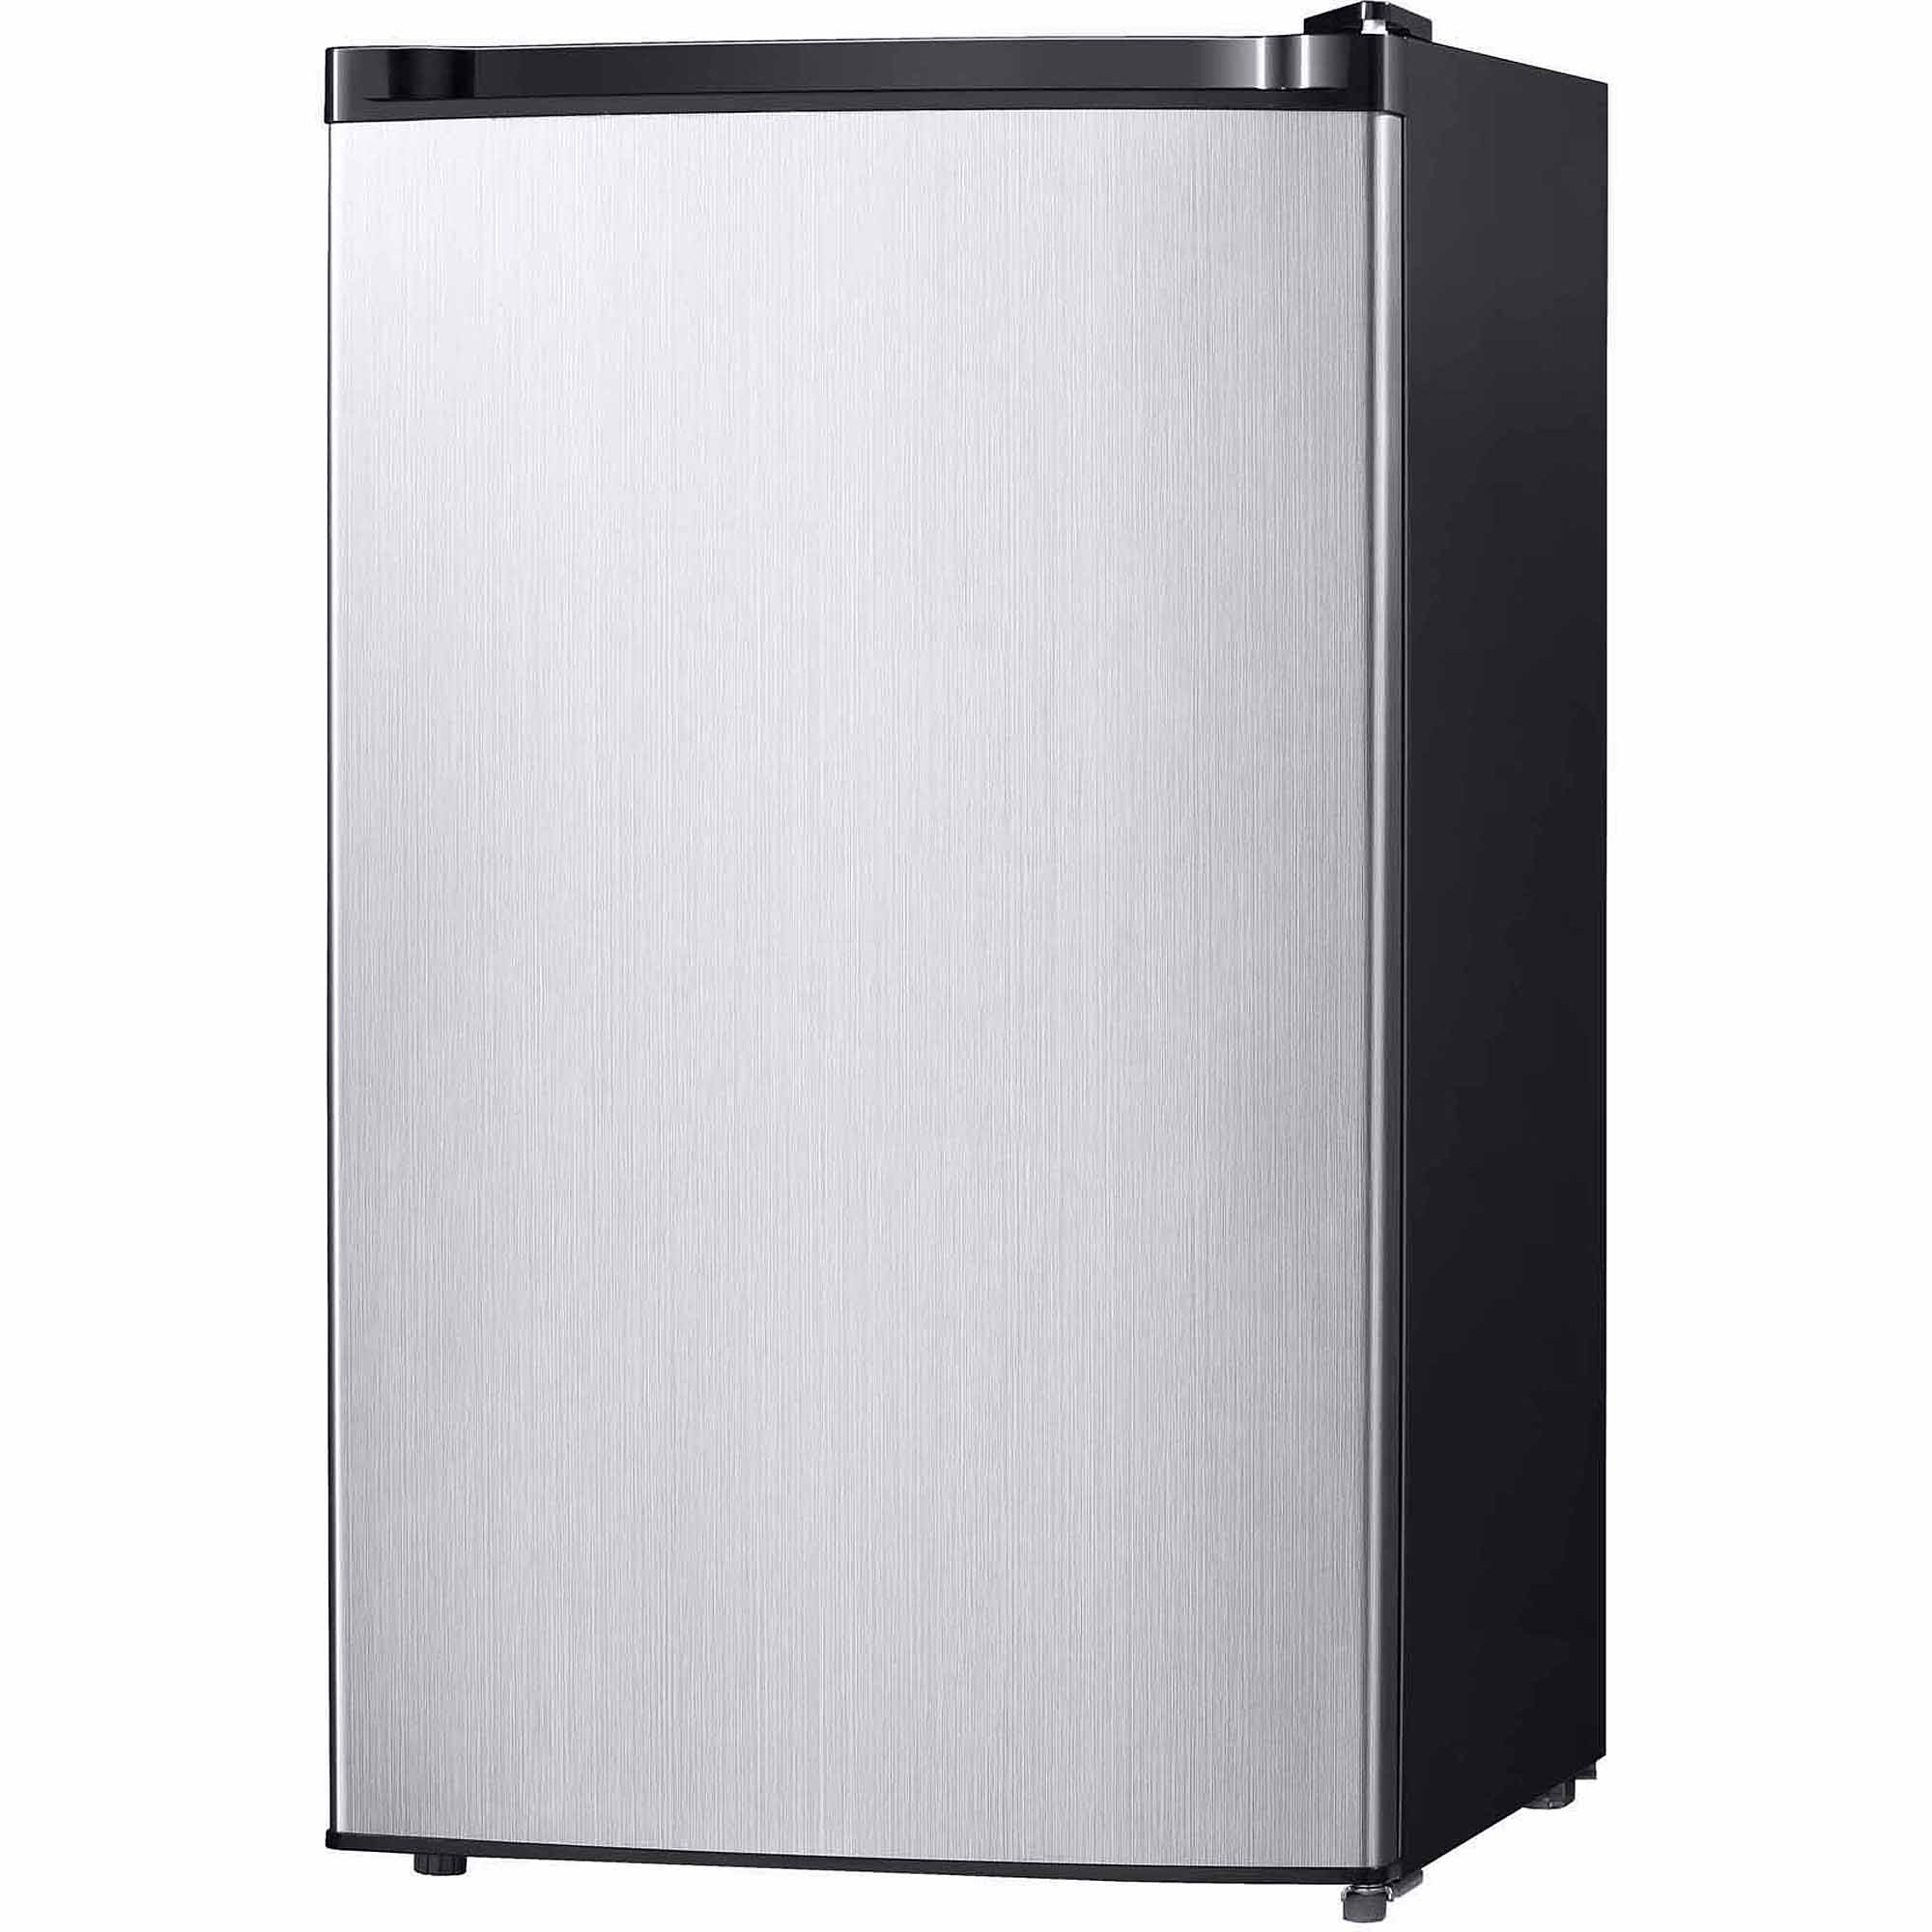 Midea 4.4 cubic foot, Compact Refrigerator, Stainless steel look